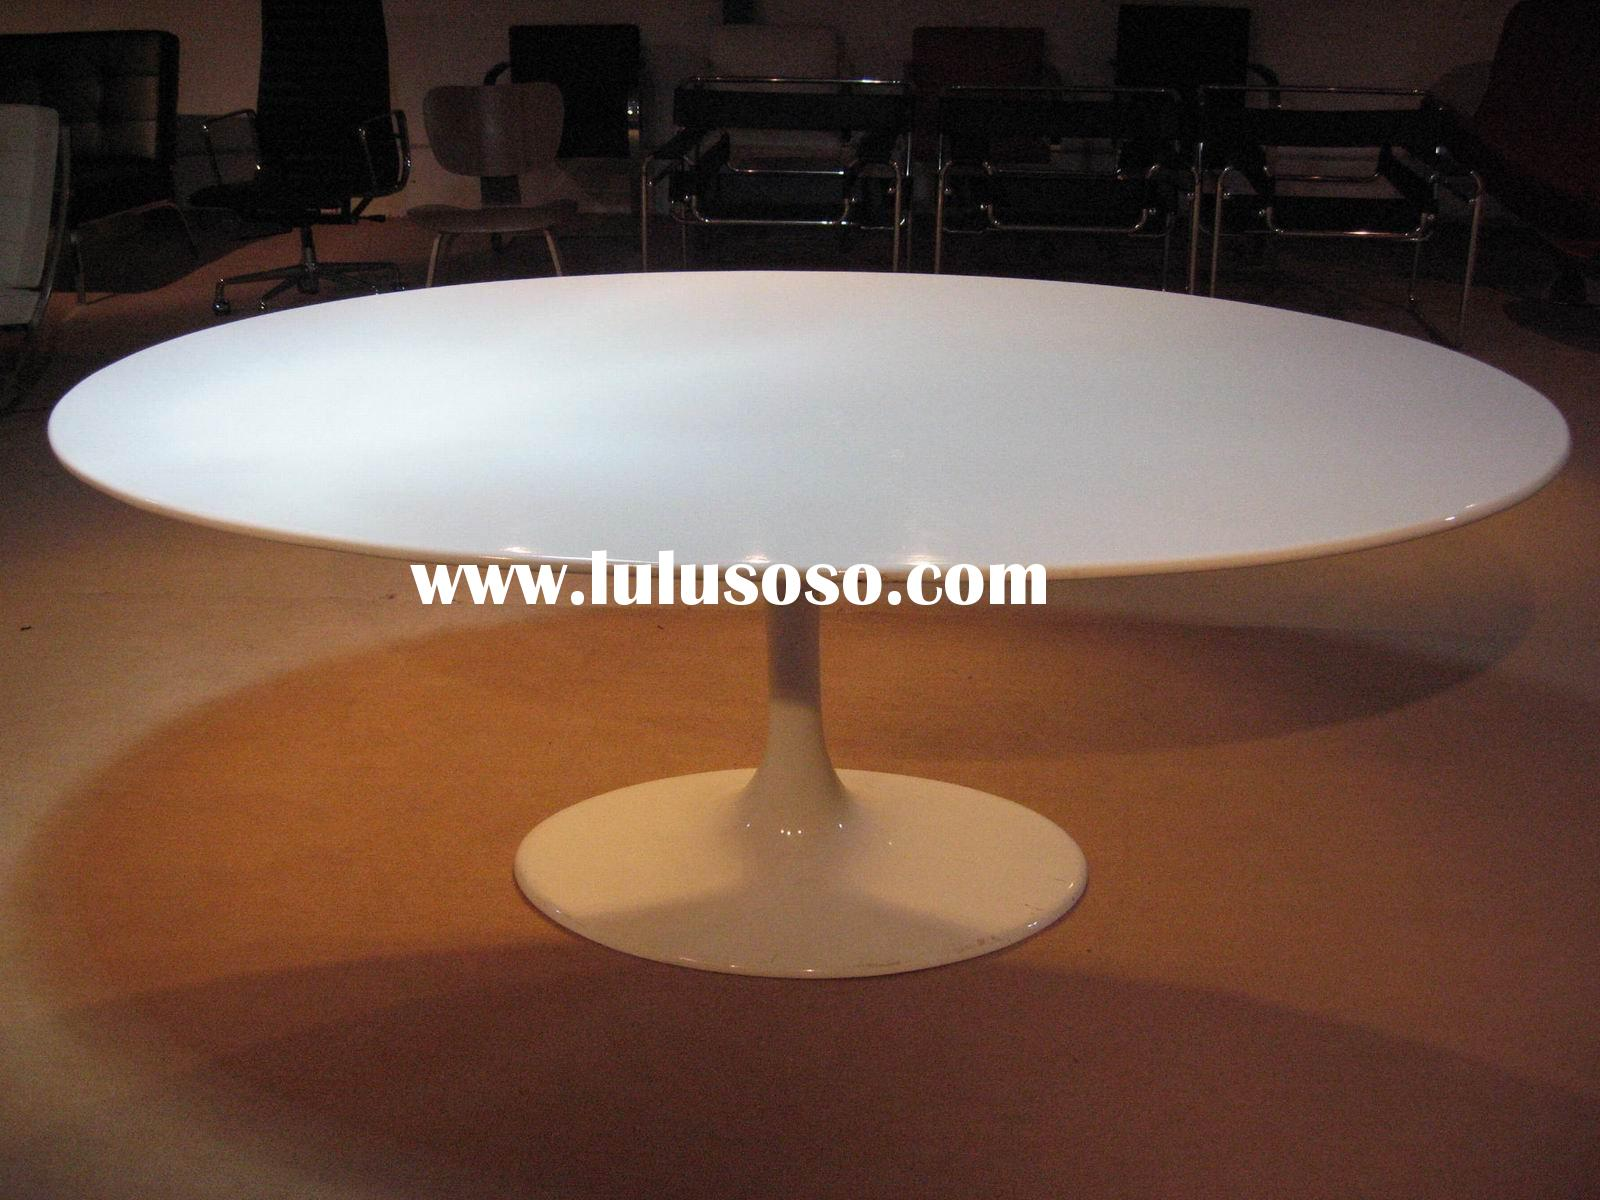 Tulip Oval Dining Table/ KT209